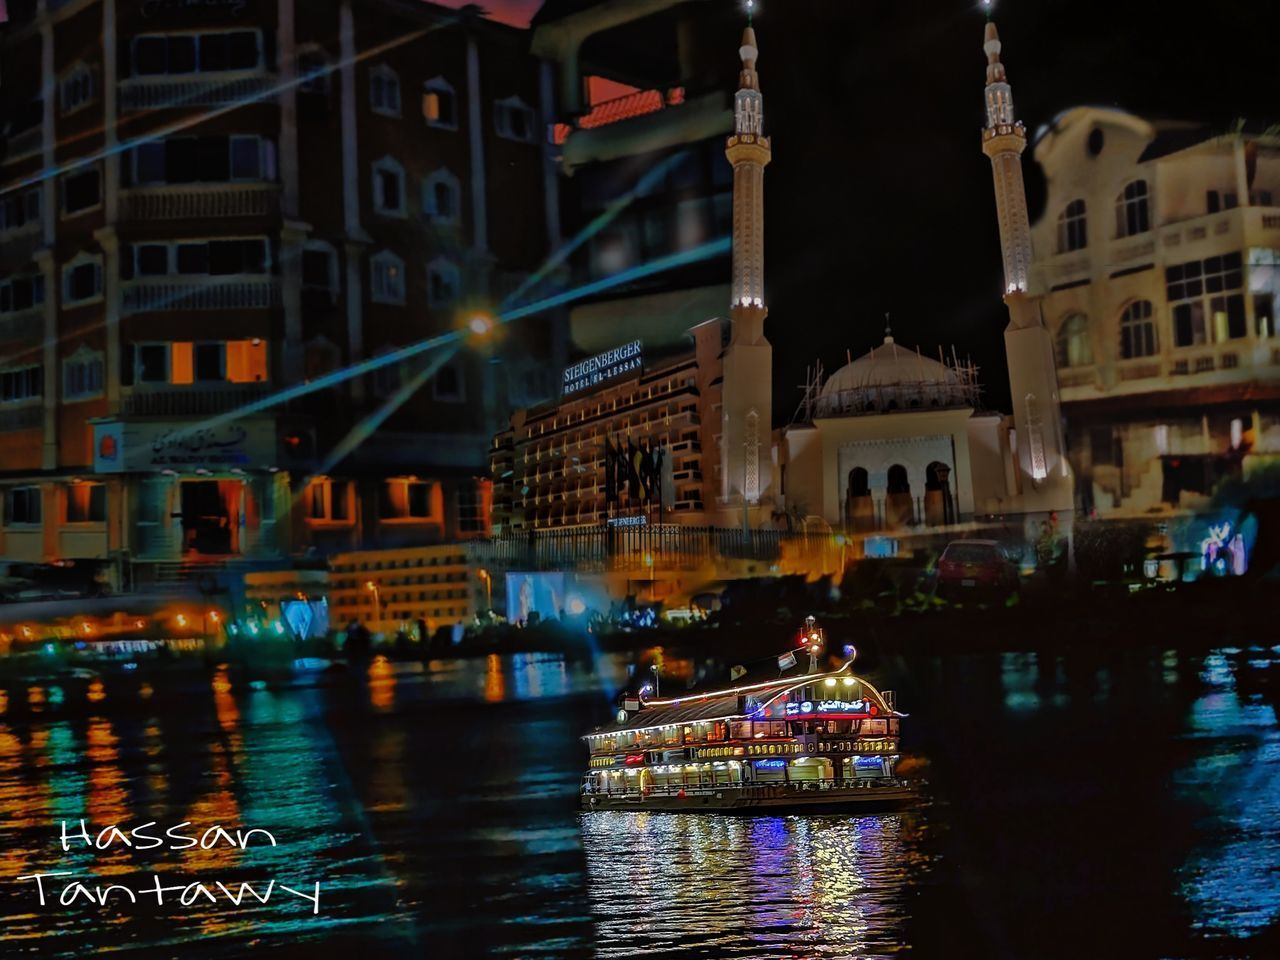 building exterior, water, architecture, built structure, night, city, illuminated, transportation, nautical vessel, mode of transportation, waterfront, building, reflection, travel, river, nature, outdoors, no people, travel destinations